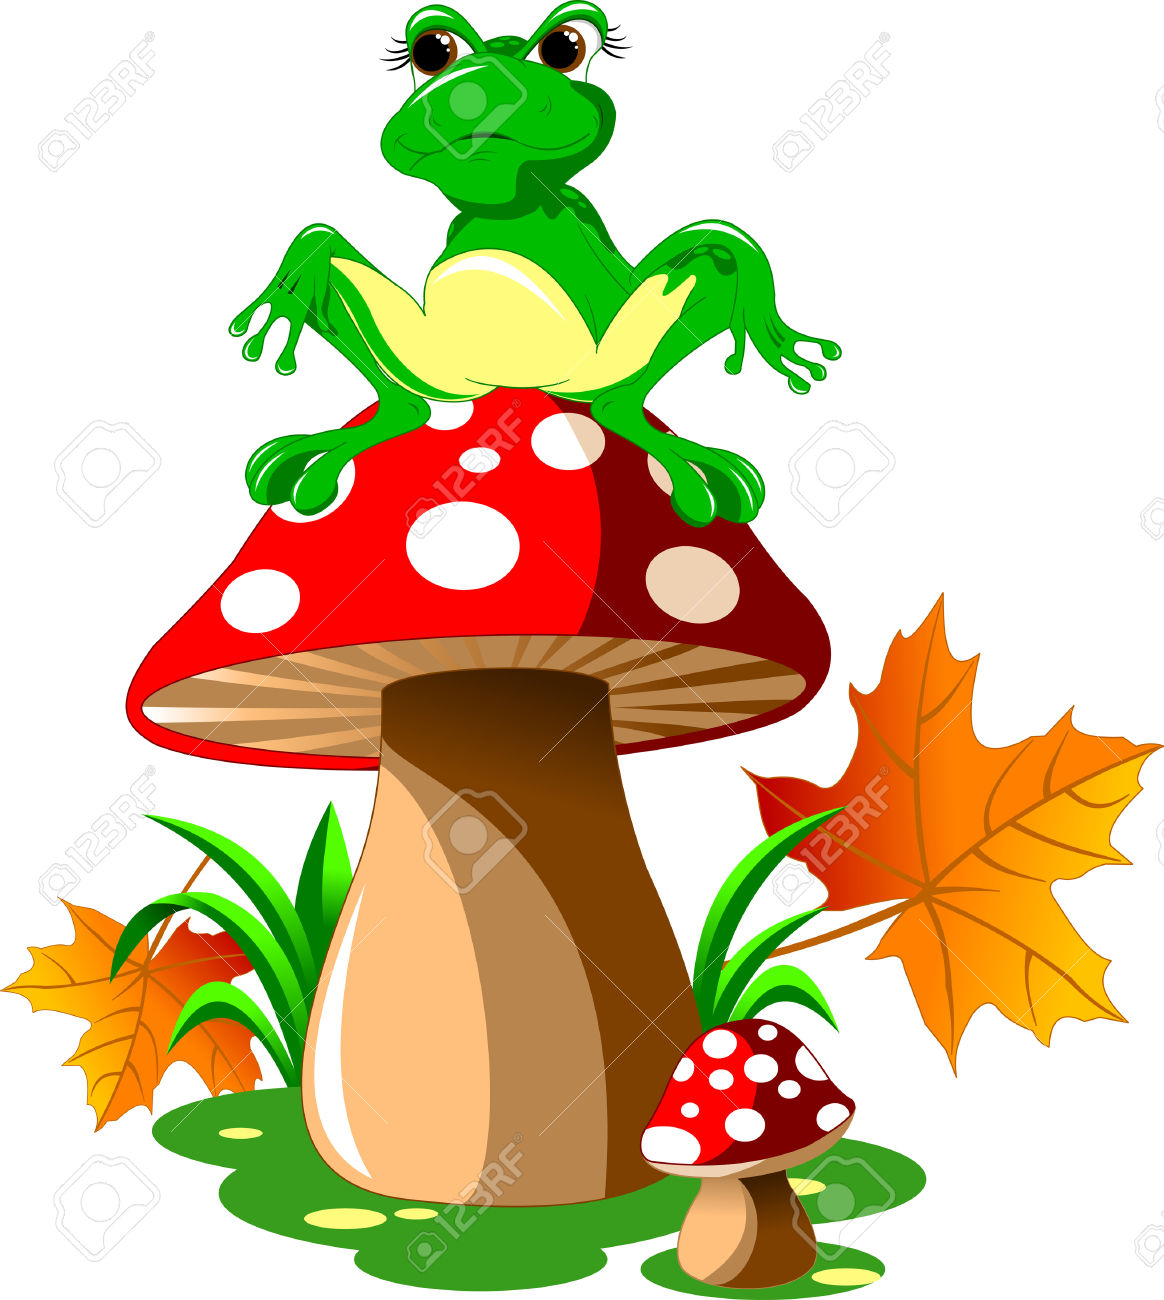 Green Frog Sitting On A Red Mushroom Hat, Vector Royalty Free.